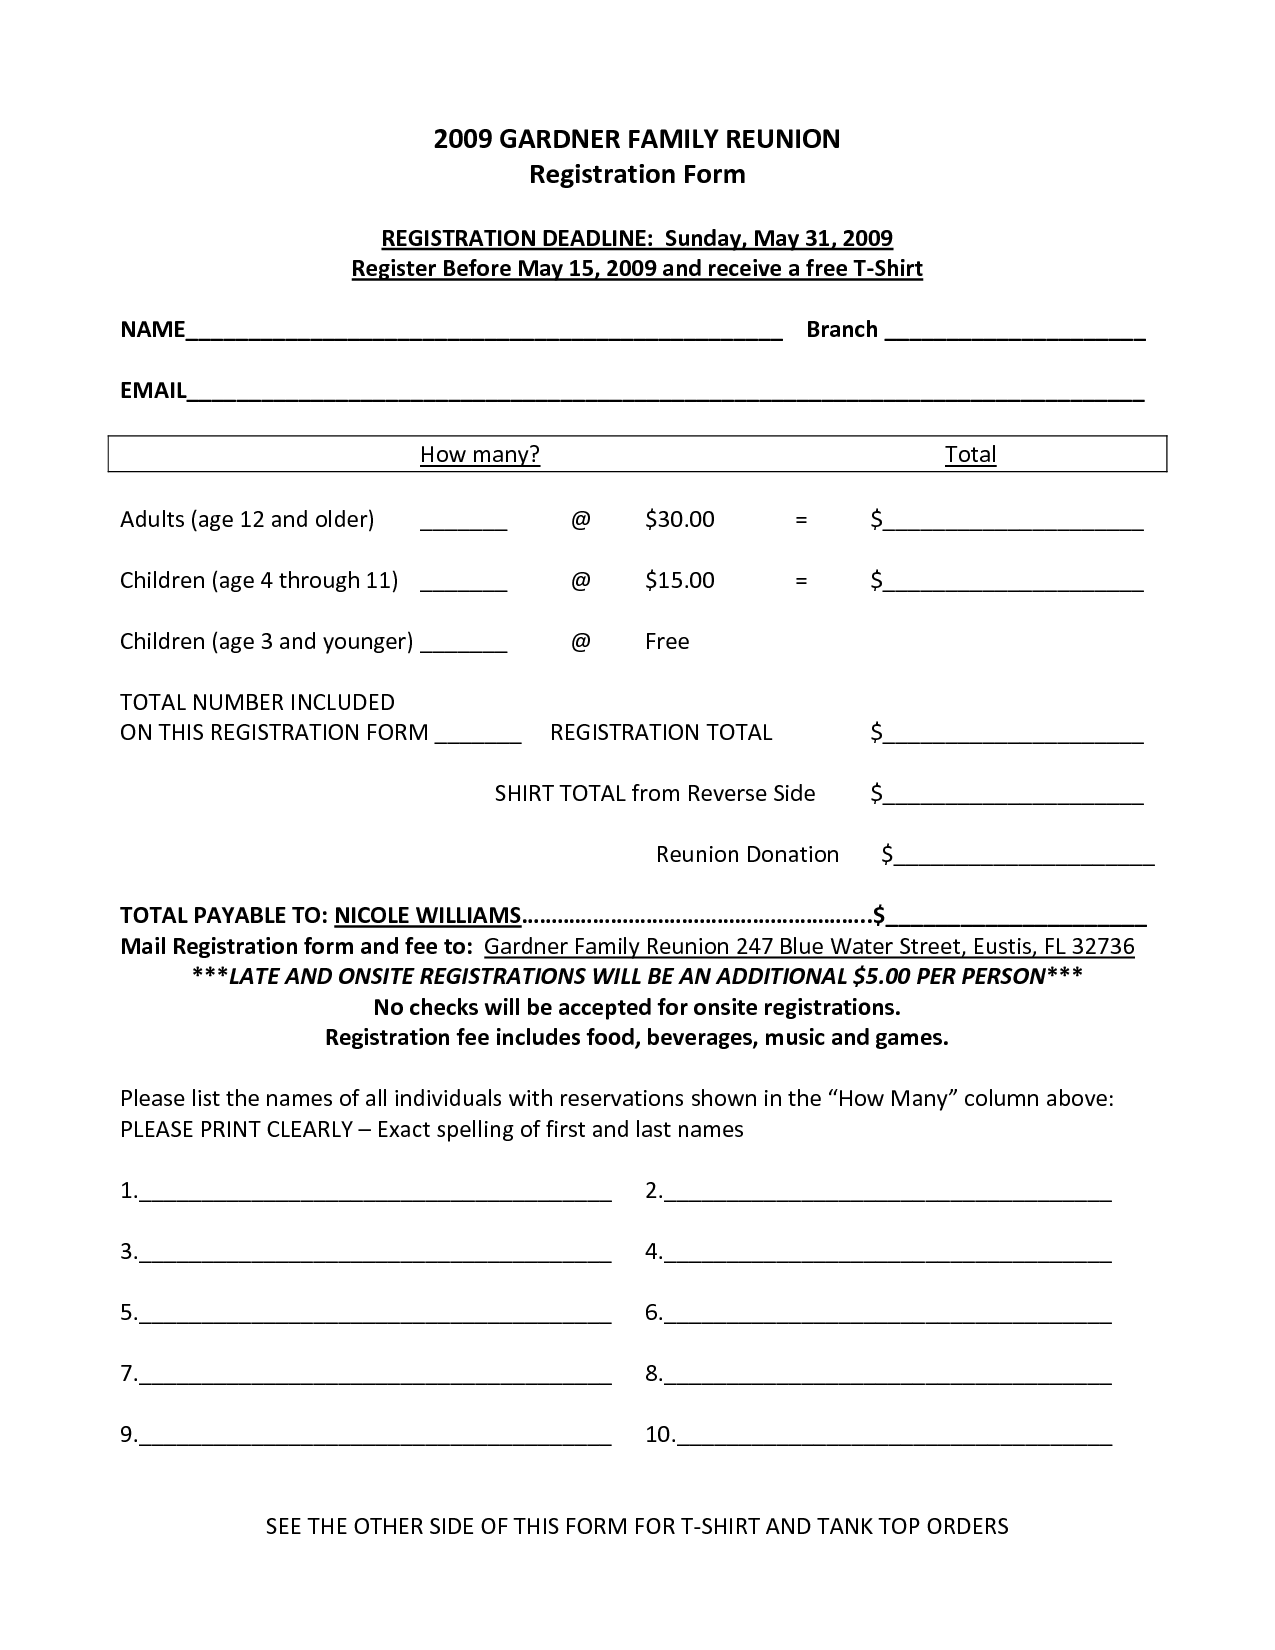 Family Reunion Registration Form Template  Paper Registration Form Template